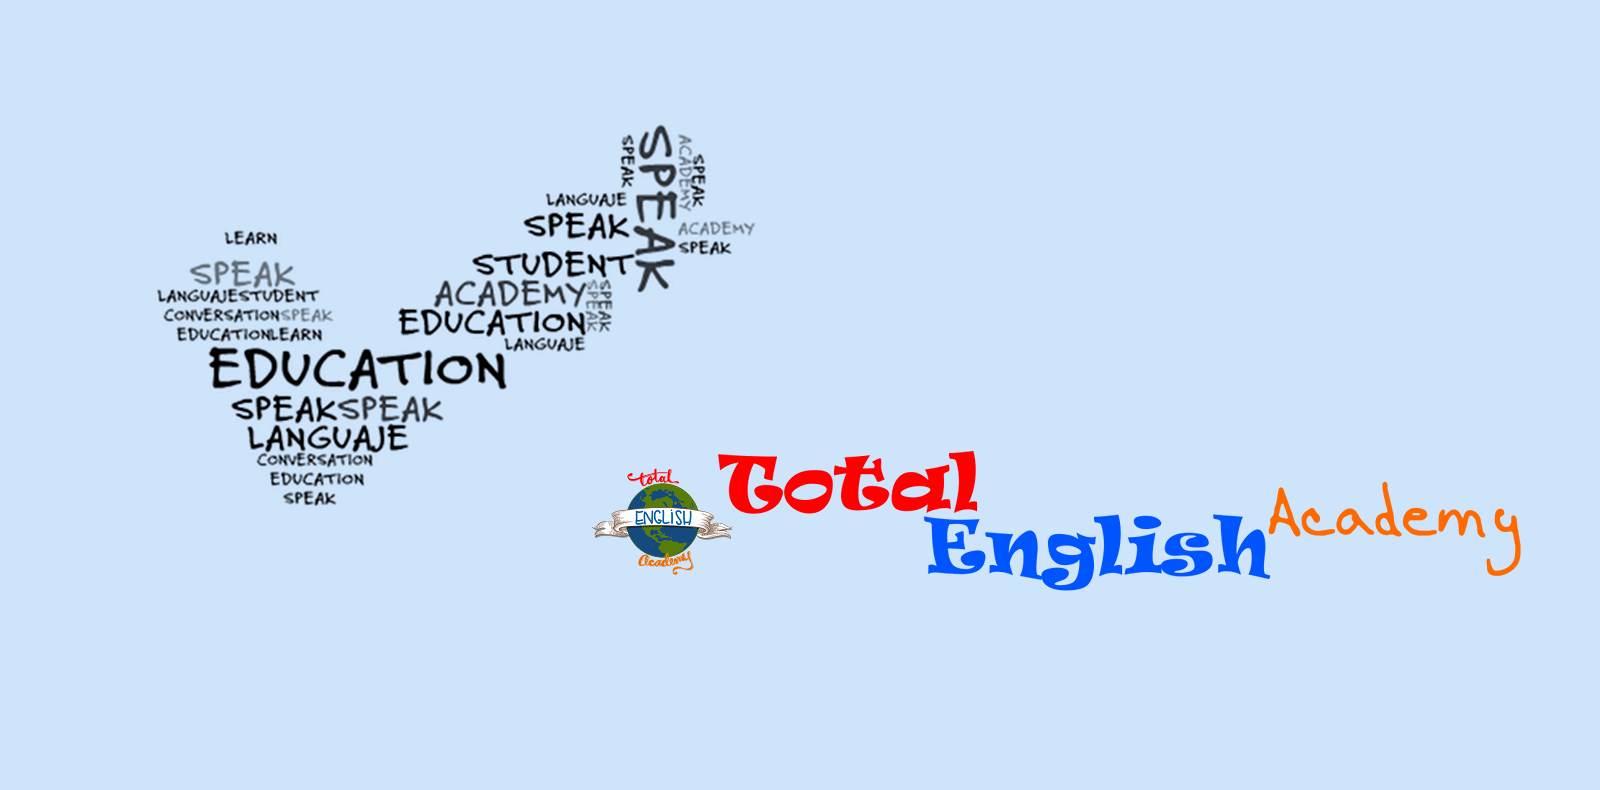 total-english-academy-slide-07.png